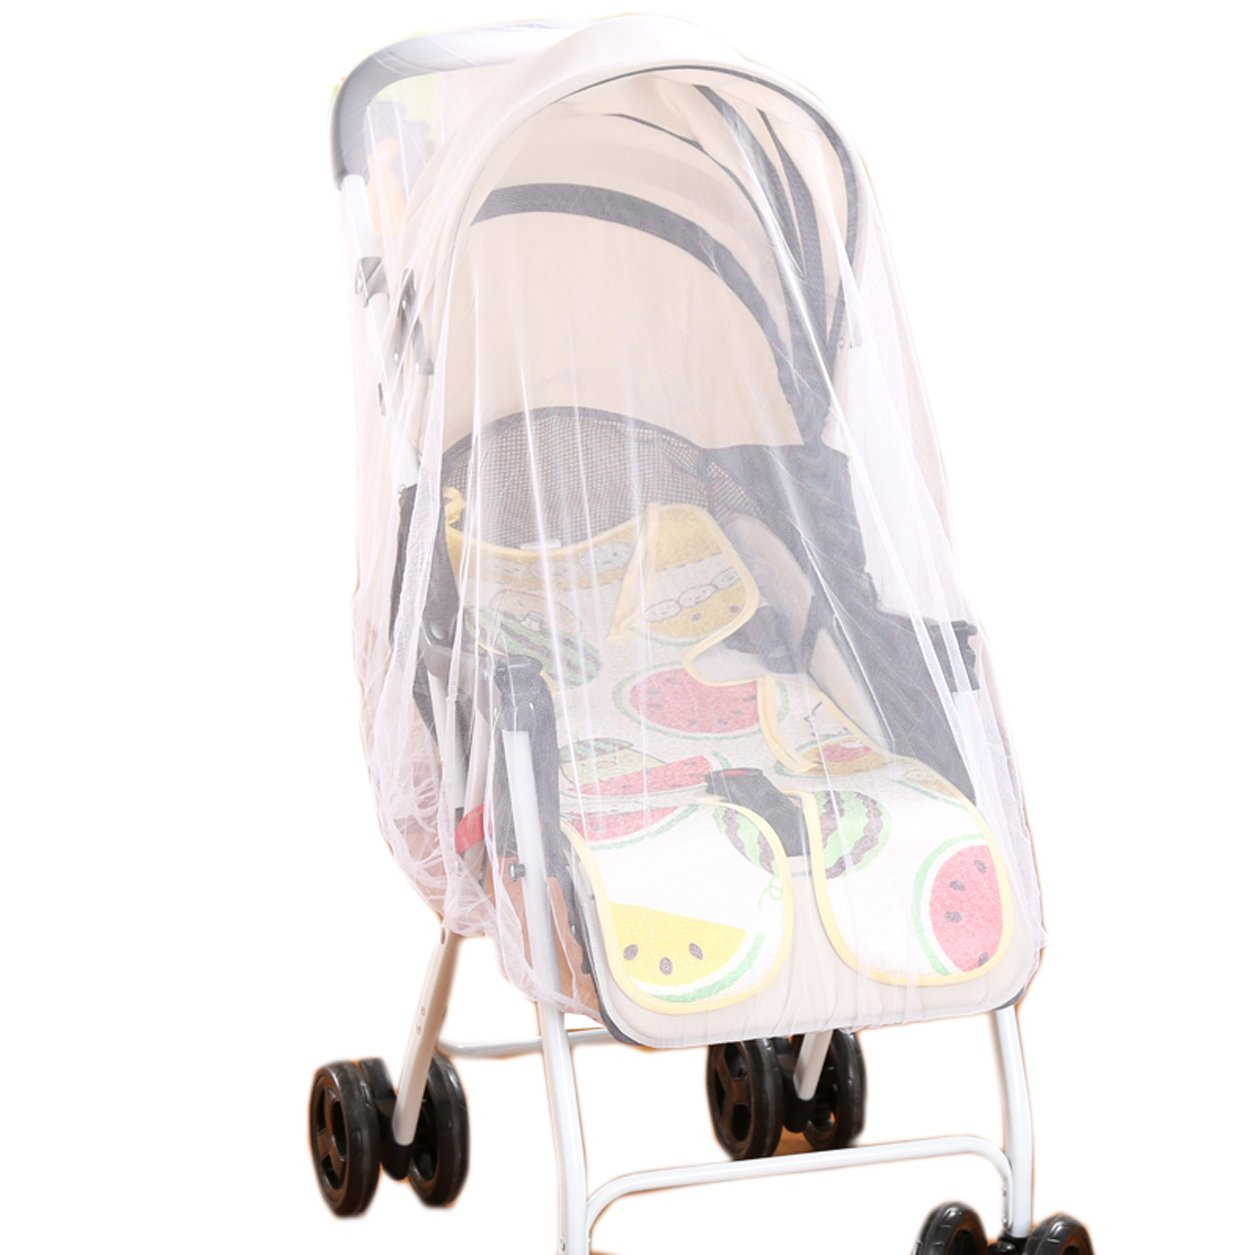 Ilucy 300cmX60cm Baby Cart Full Cover Mosquito Net For Strollers Infant Carriers Car Seats Cradles